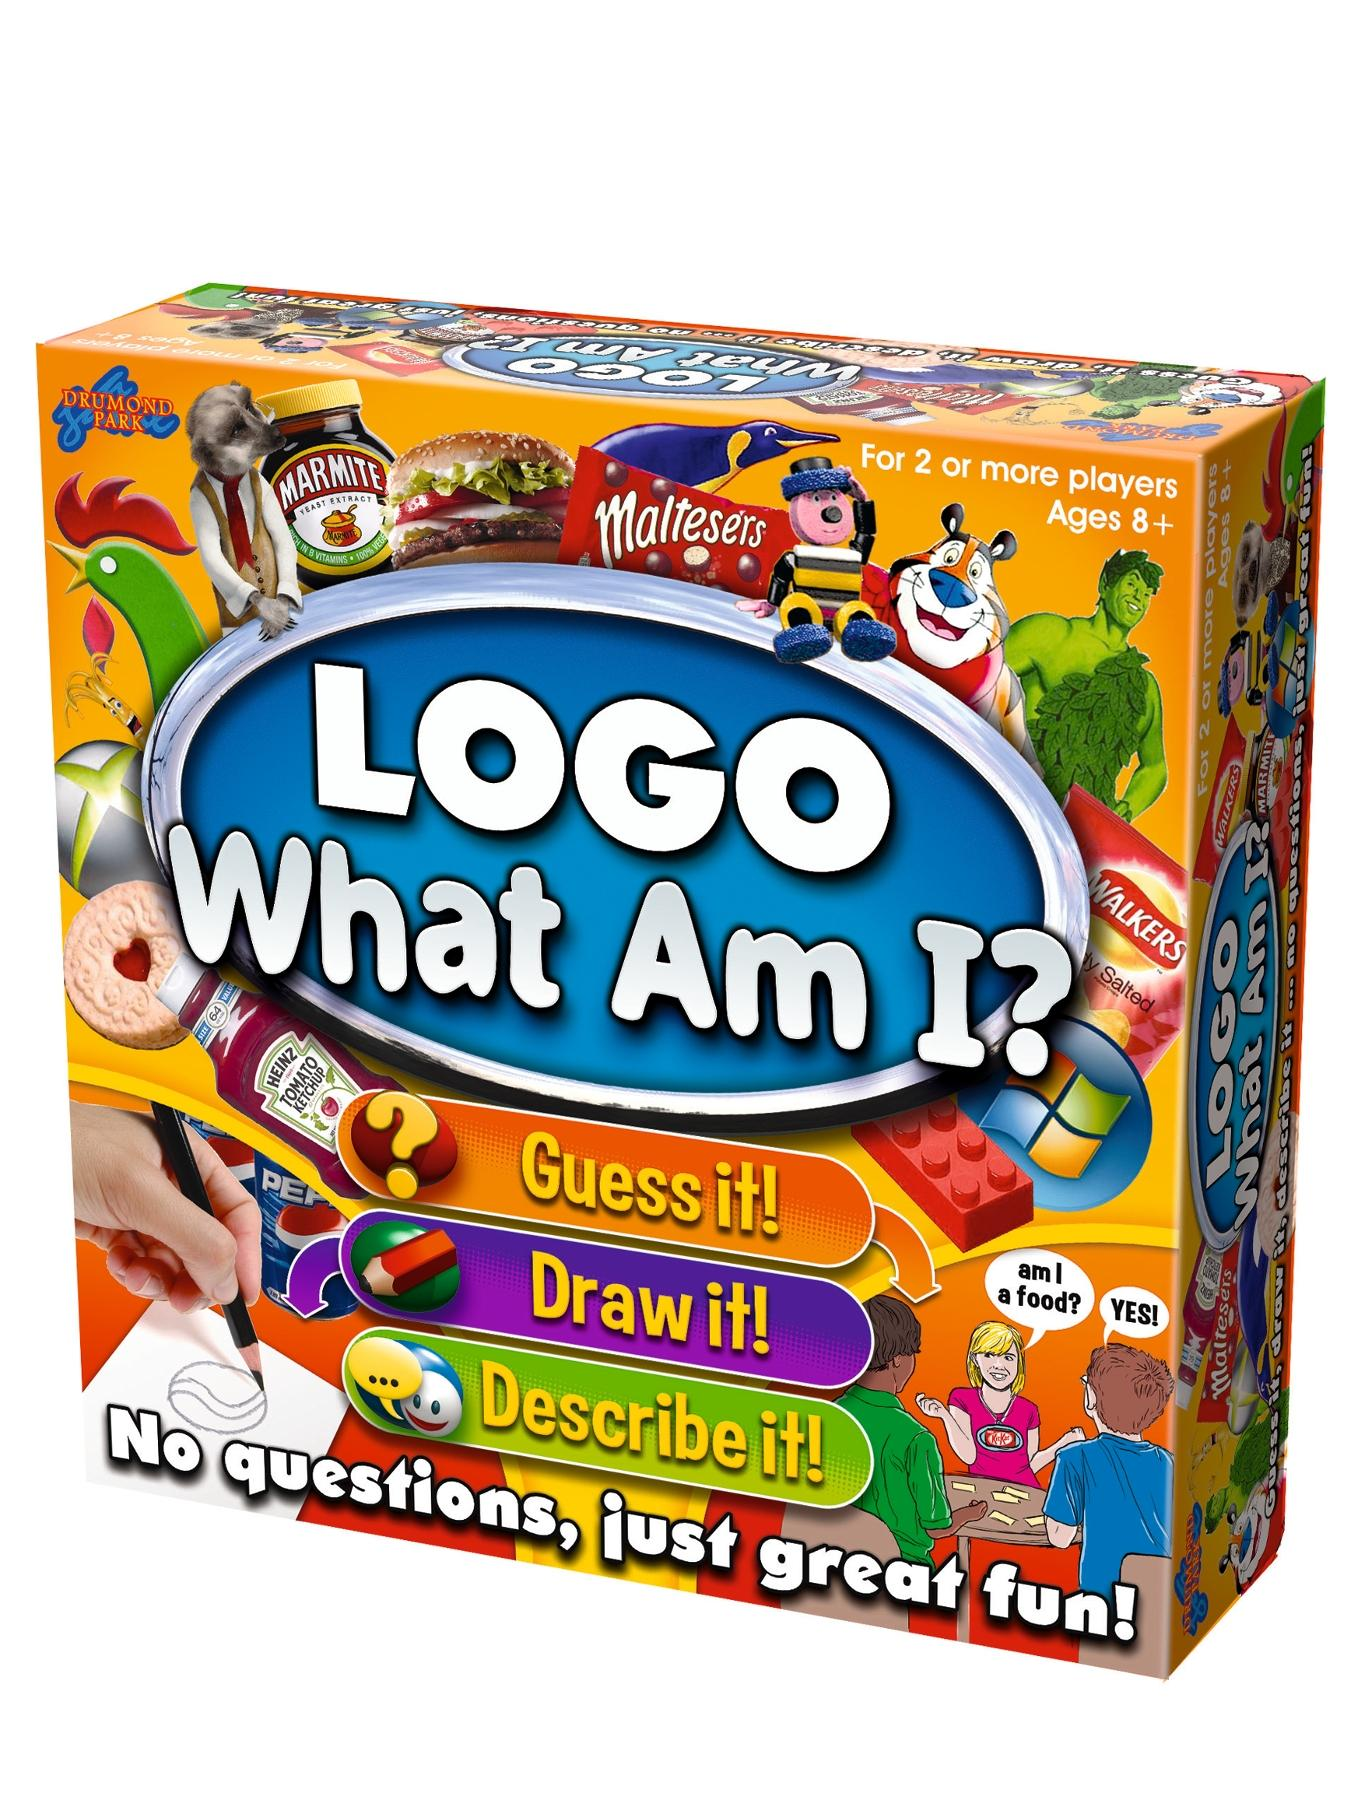 Logo 'What am I?'